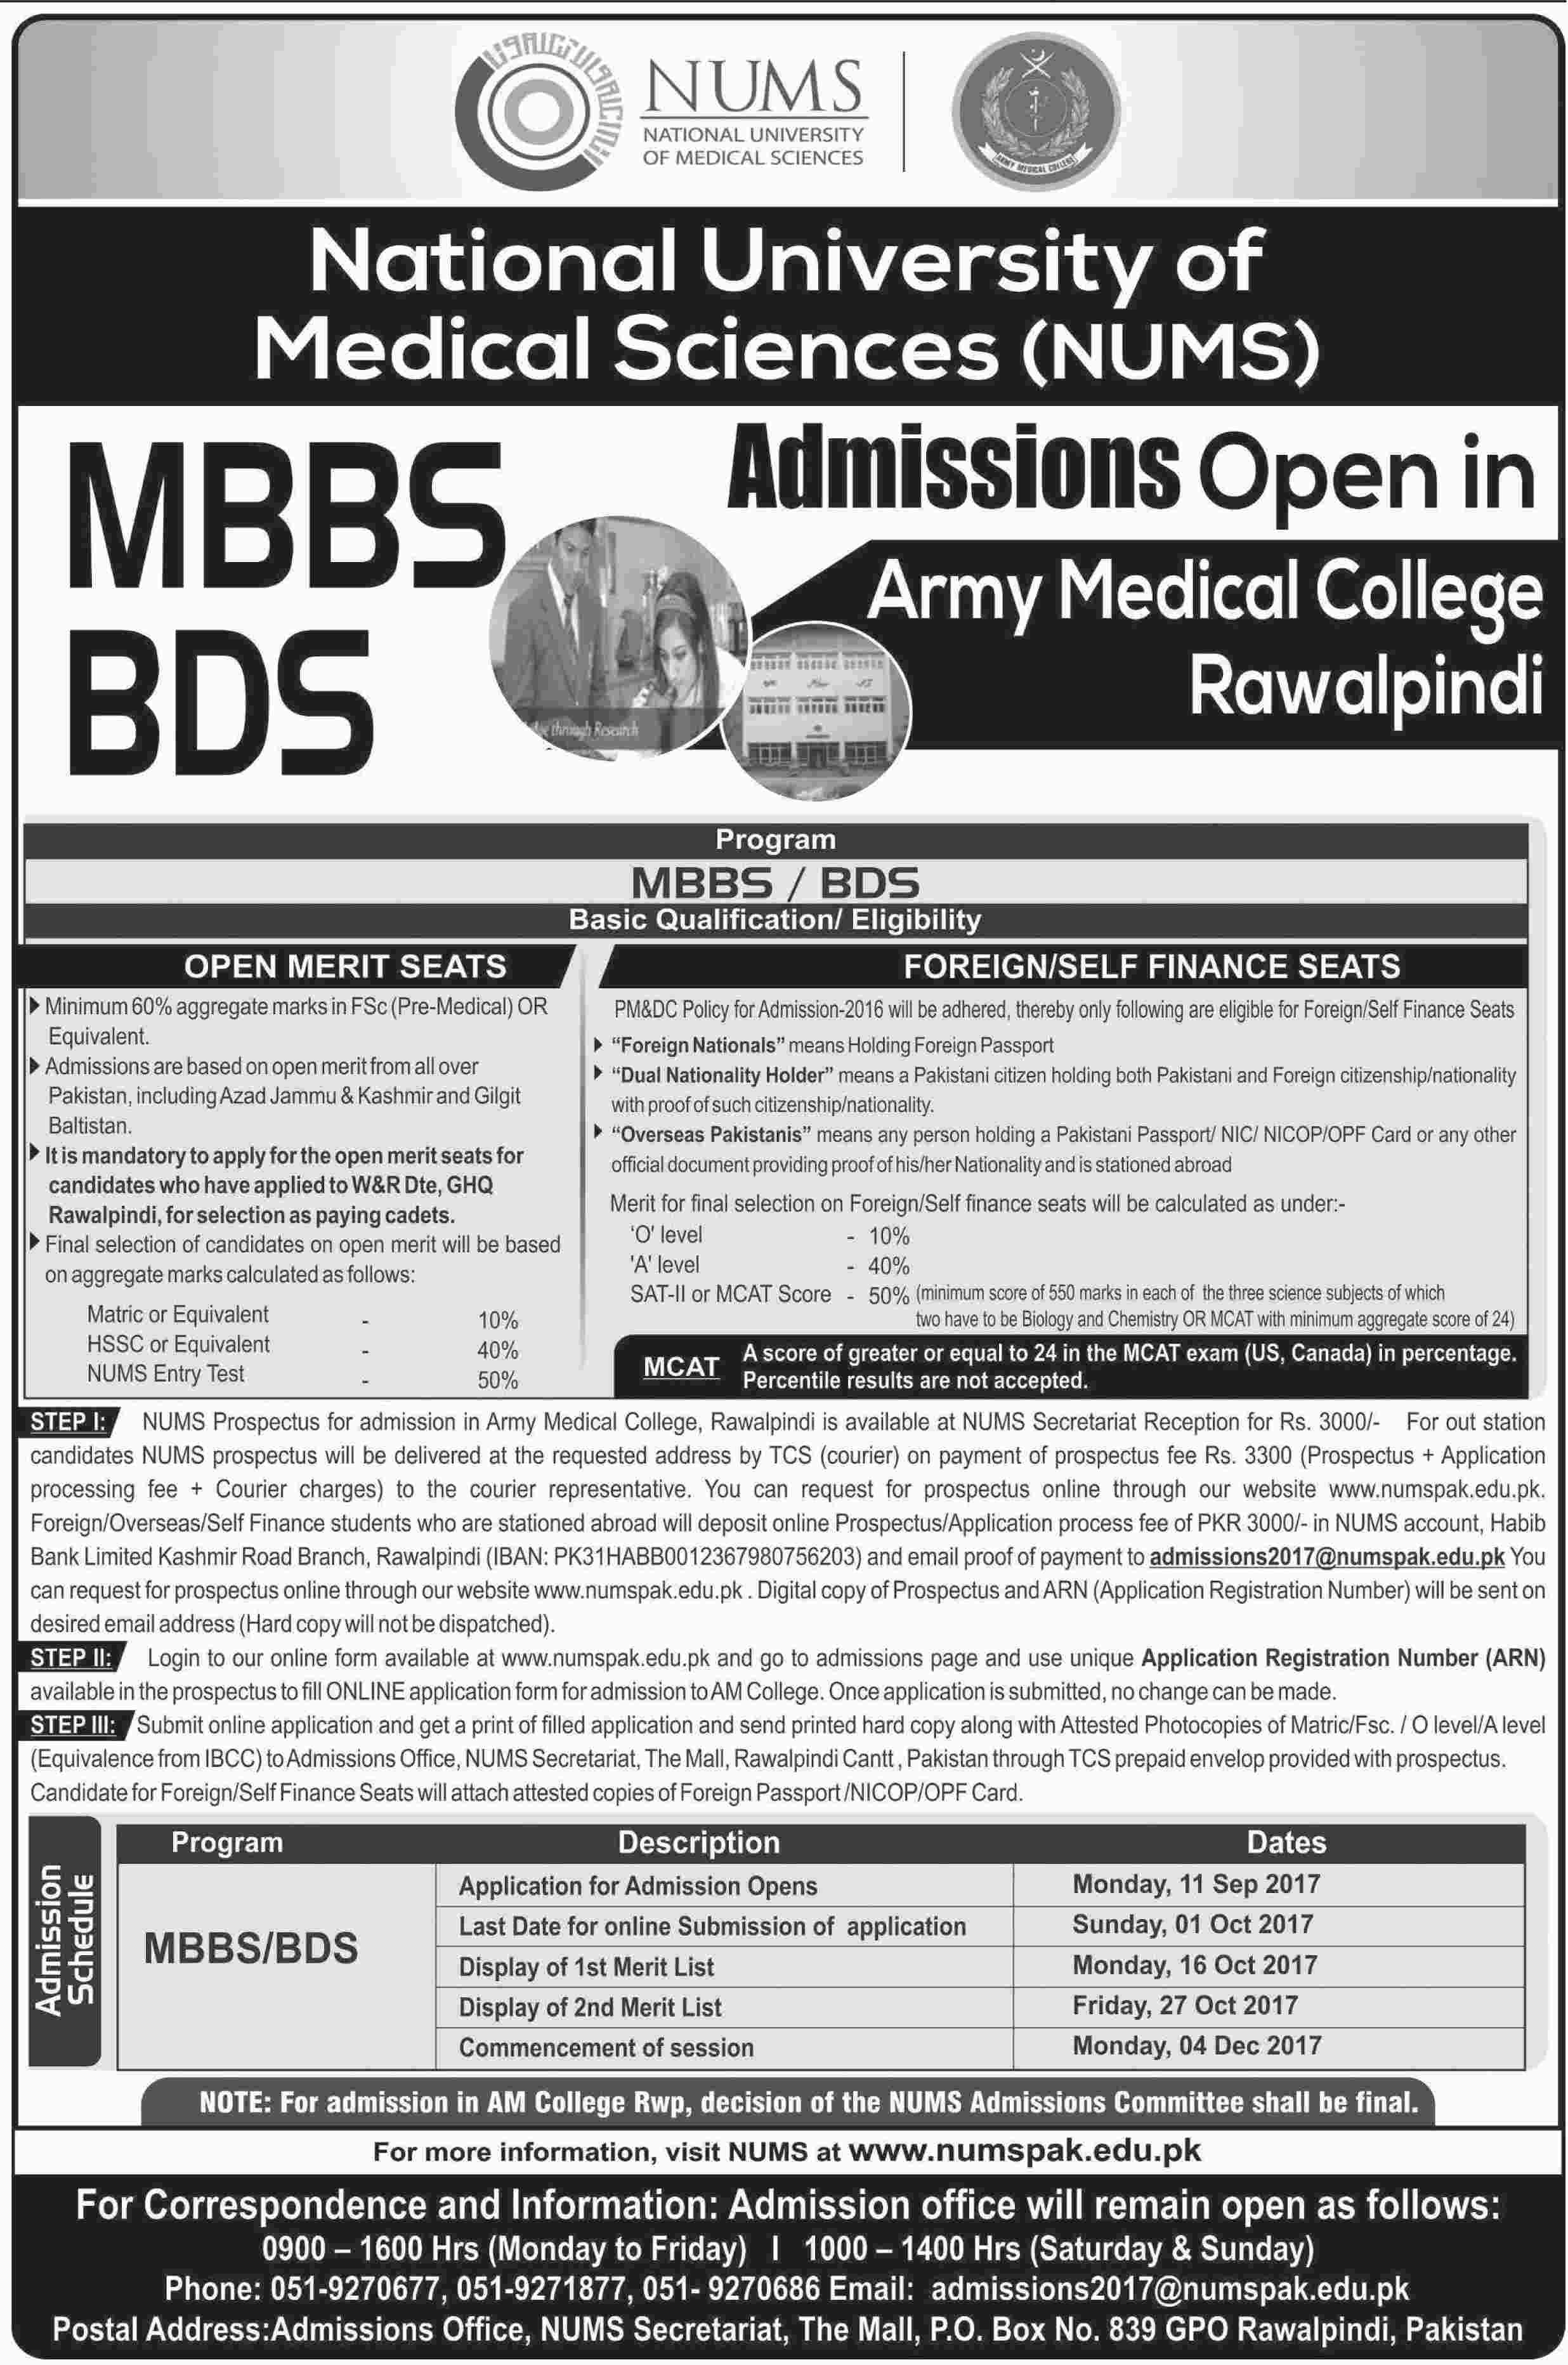 National University Of Medical Sciences NUMS Admission 2017 MBBS/BDS Form